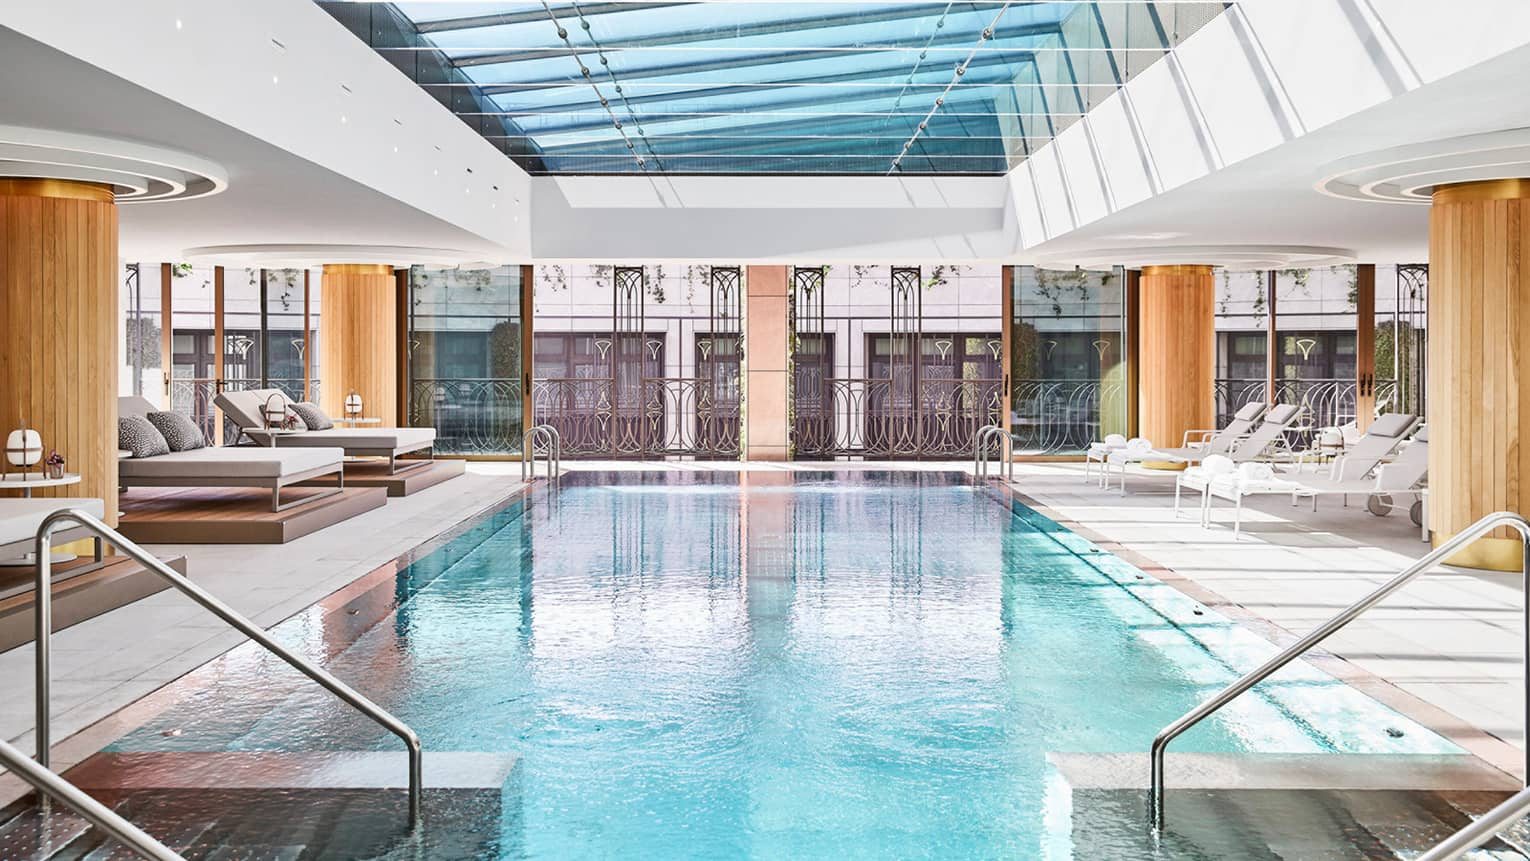 Rectangular indoor pool with two staircases into the pool, glass window ceiling